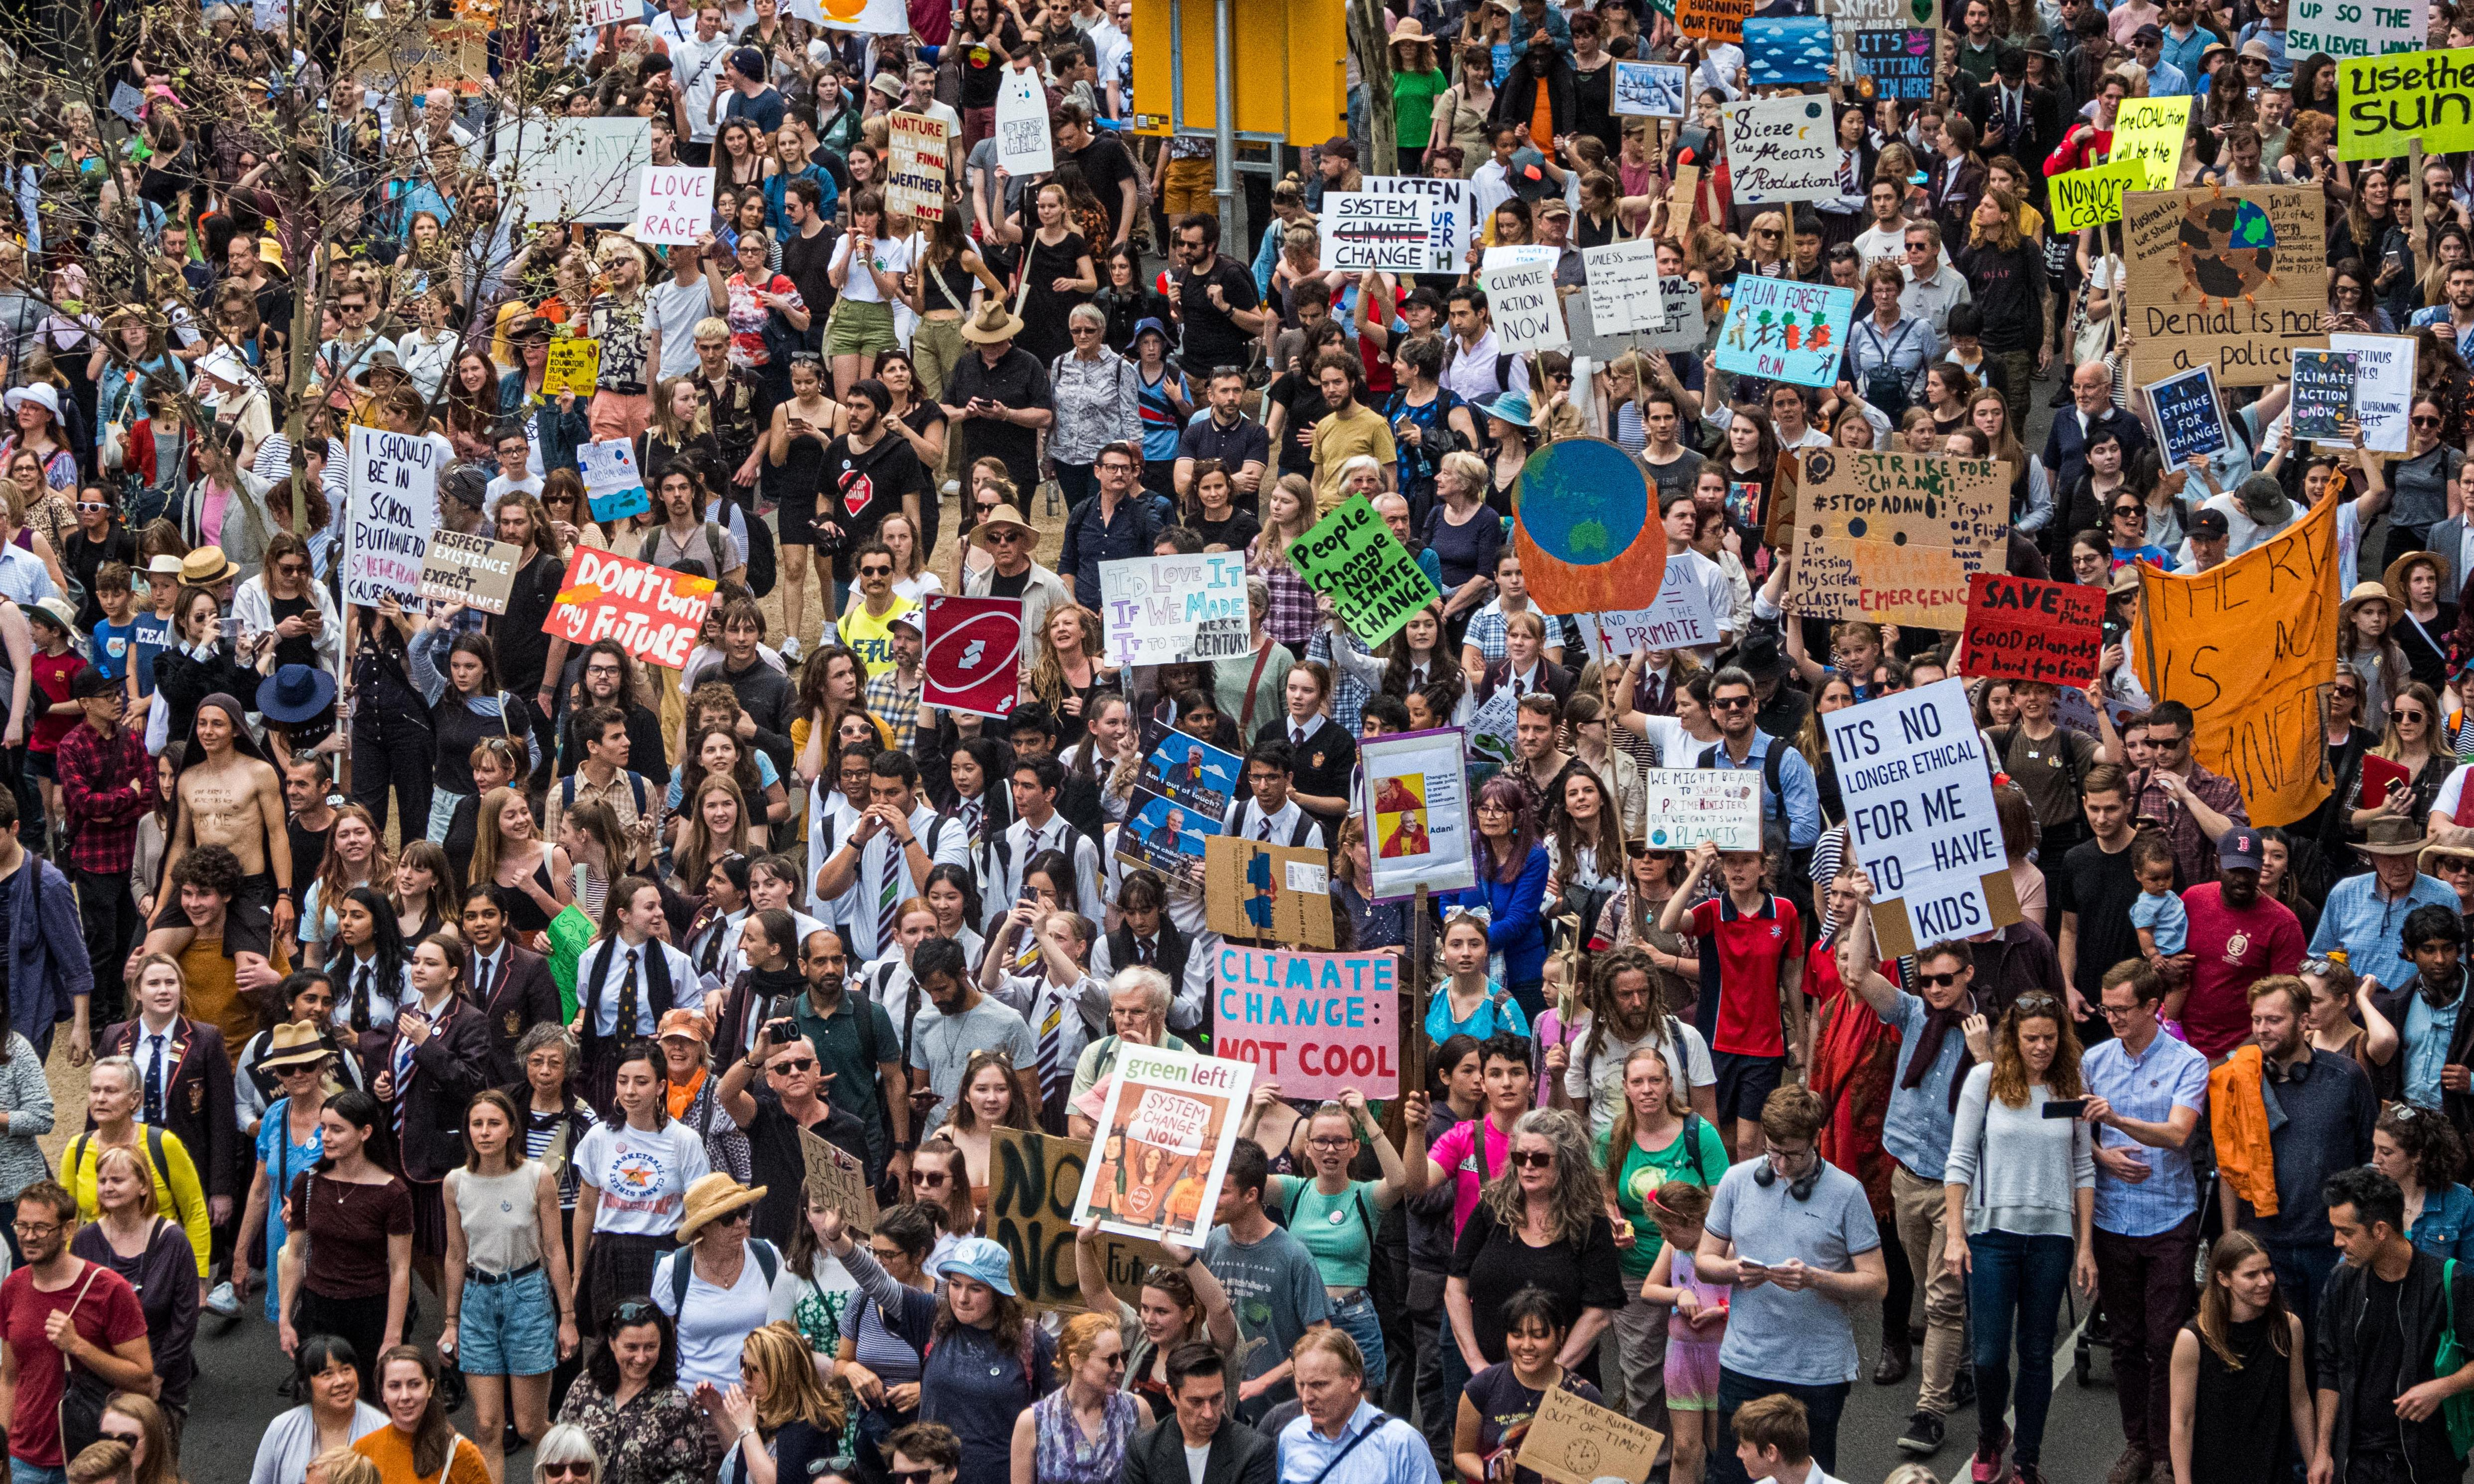 Across the globe, millions join biggest climate protest ever